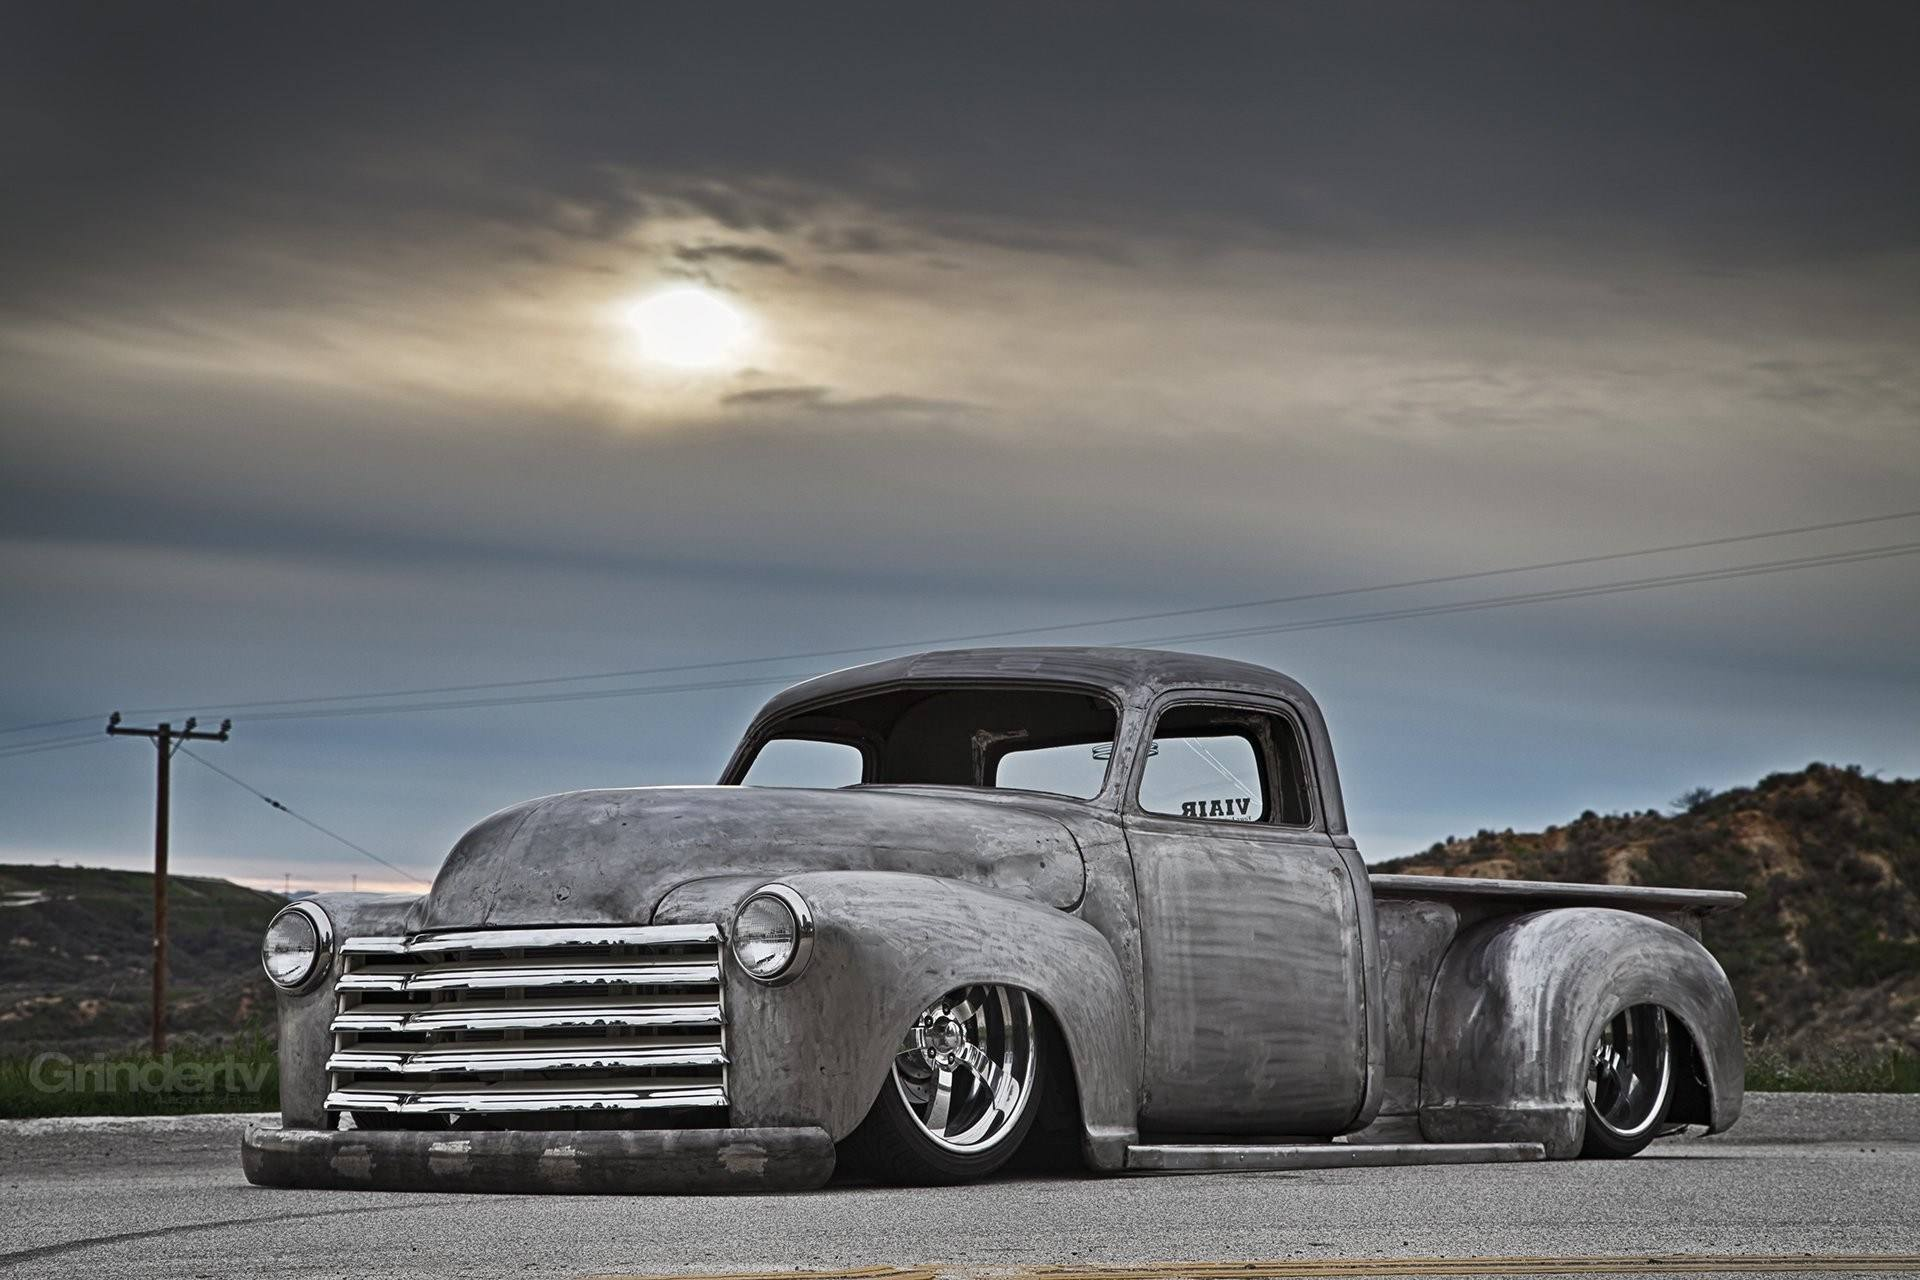 46 Special Chevy Trucks Wallpapers Types Of 1953 Chevy Truck for Sale